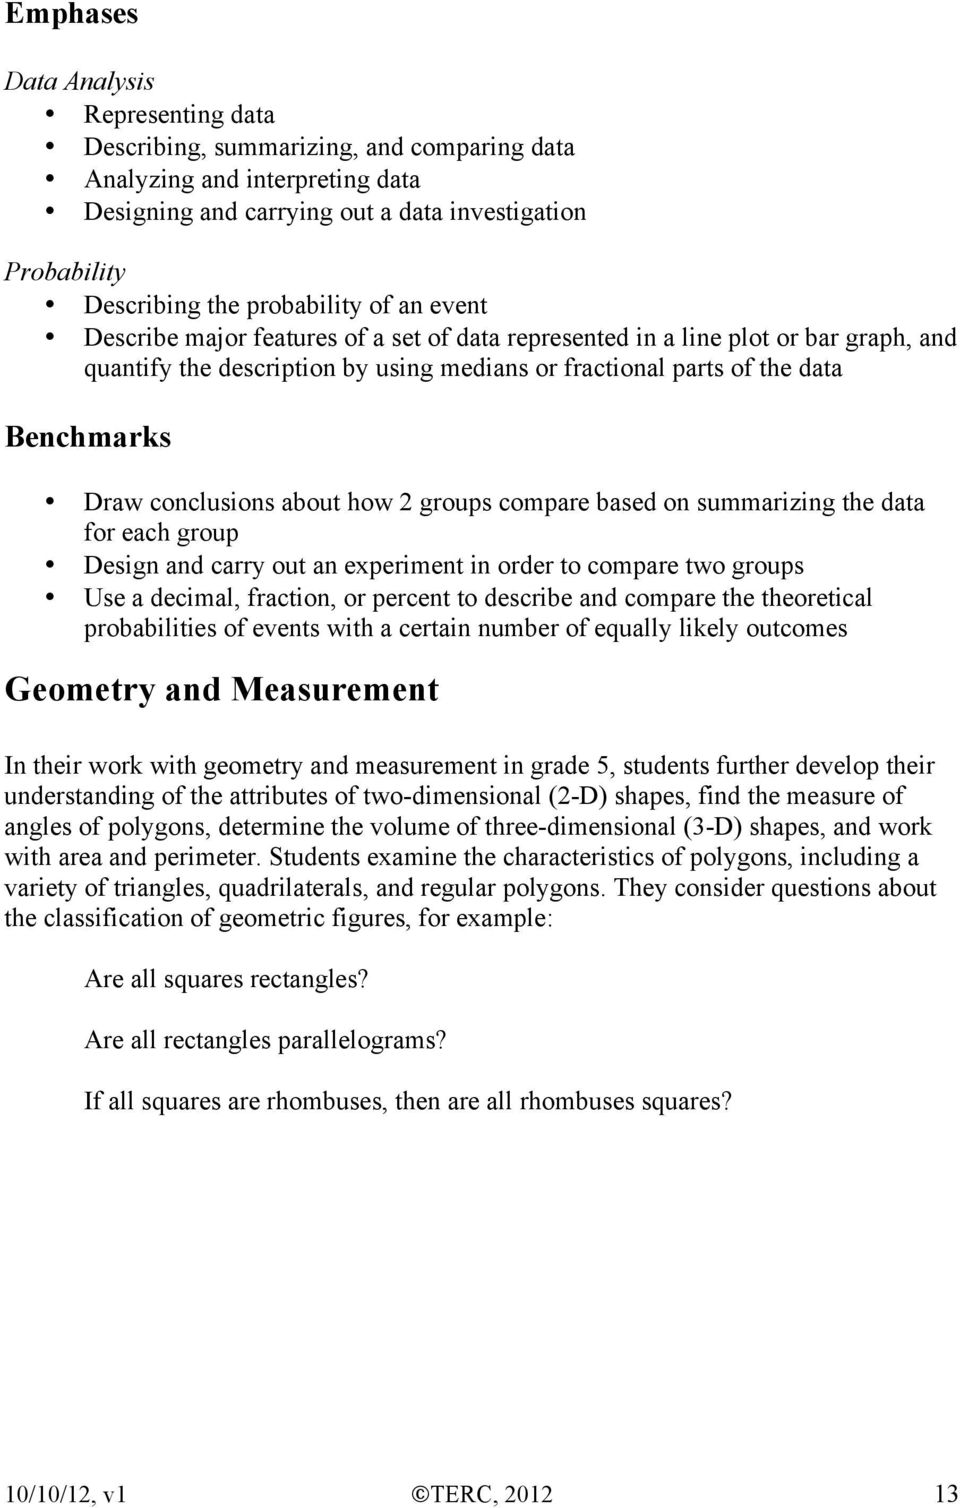 conclusions about how 2 groups compare based on summarizing the data for each group Design and carry out an experiment in order to compare two groups Use a decimal, fraction, or percent to describe